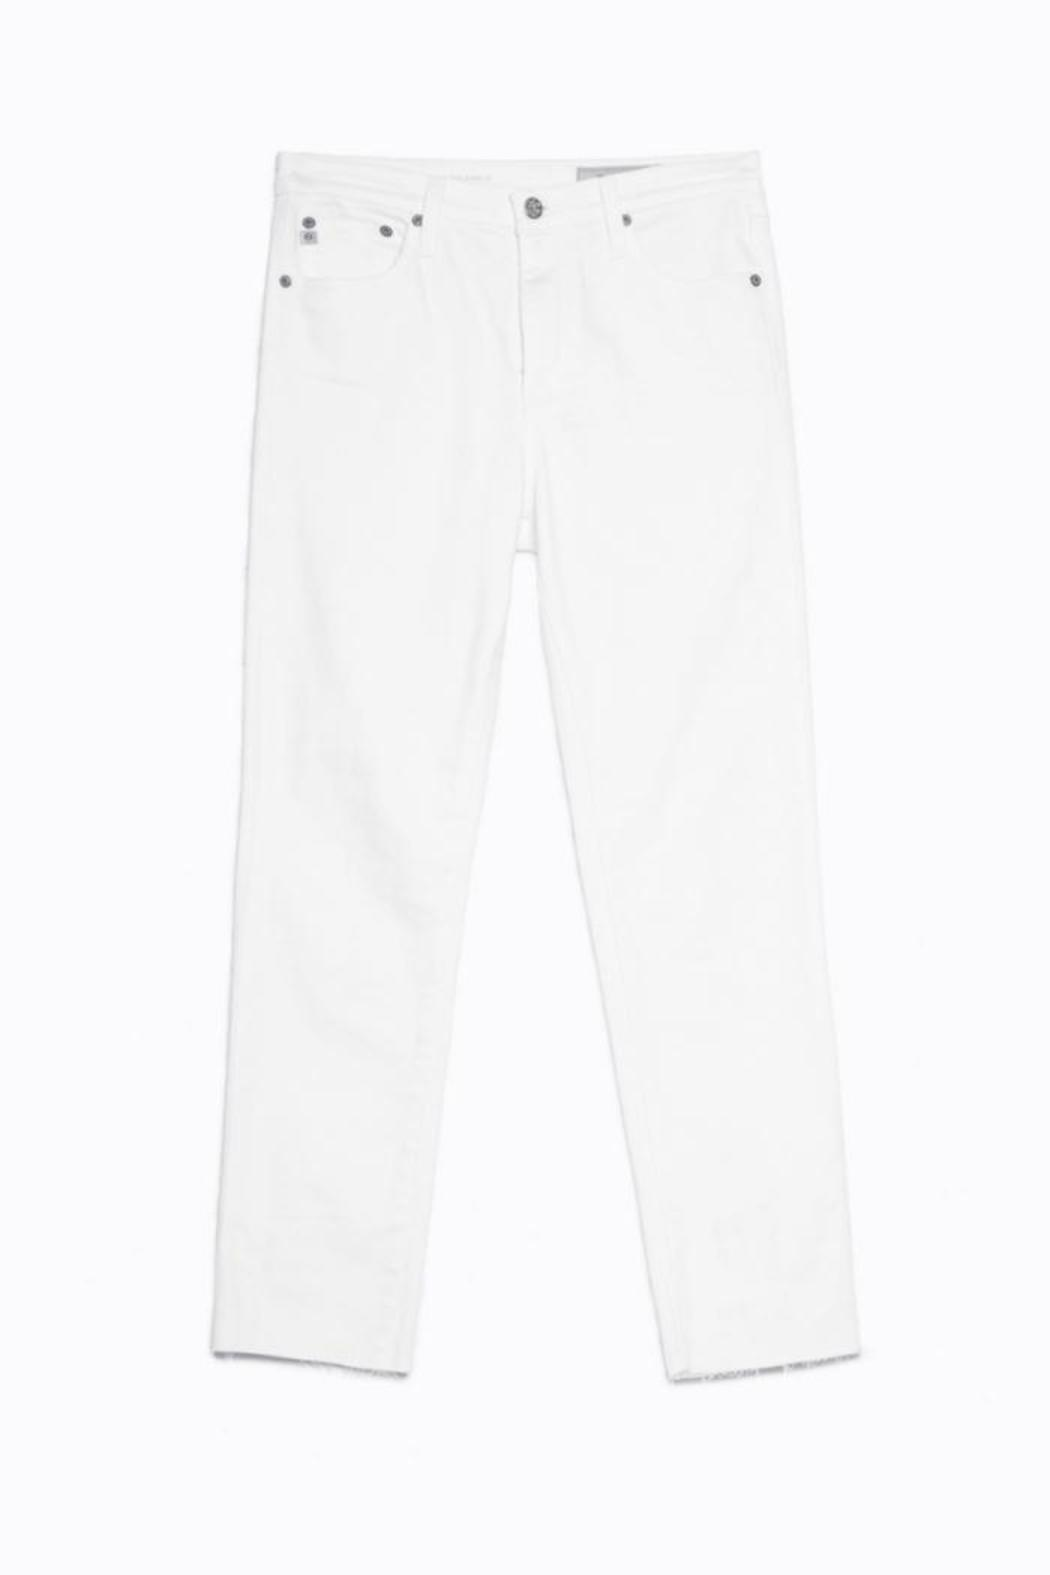 AG Jeans Isabelle White Pants - Back Cropped Image